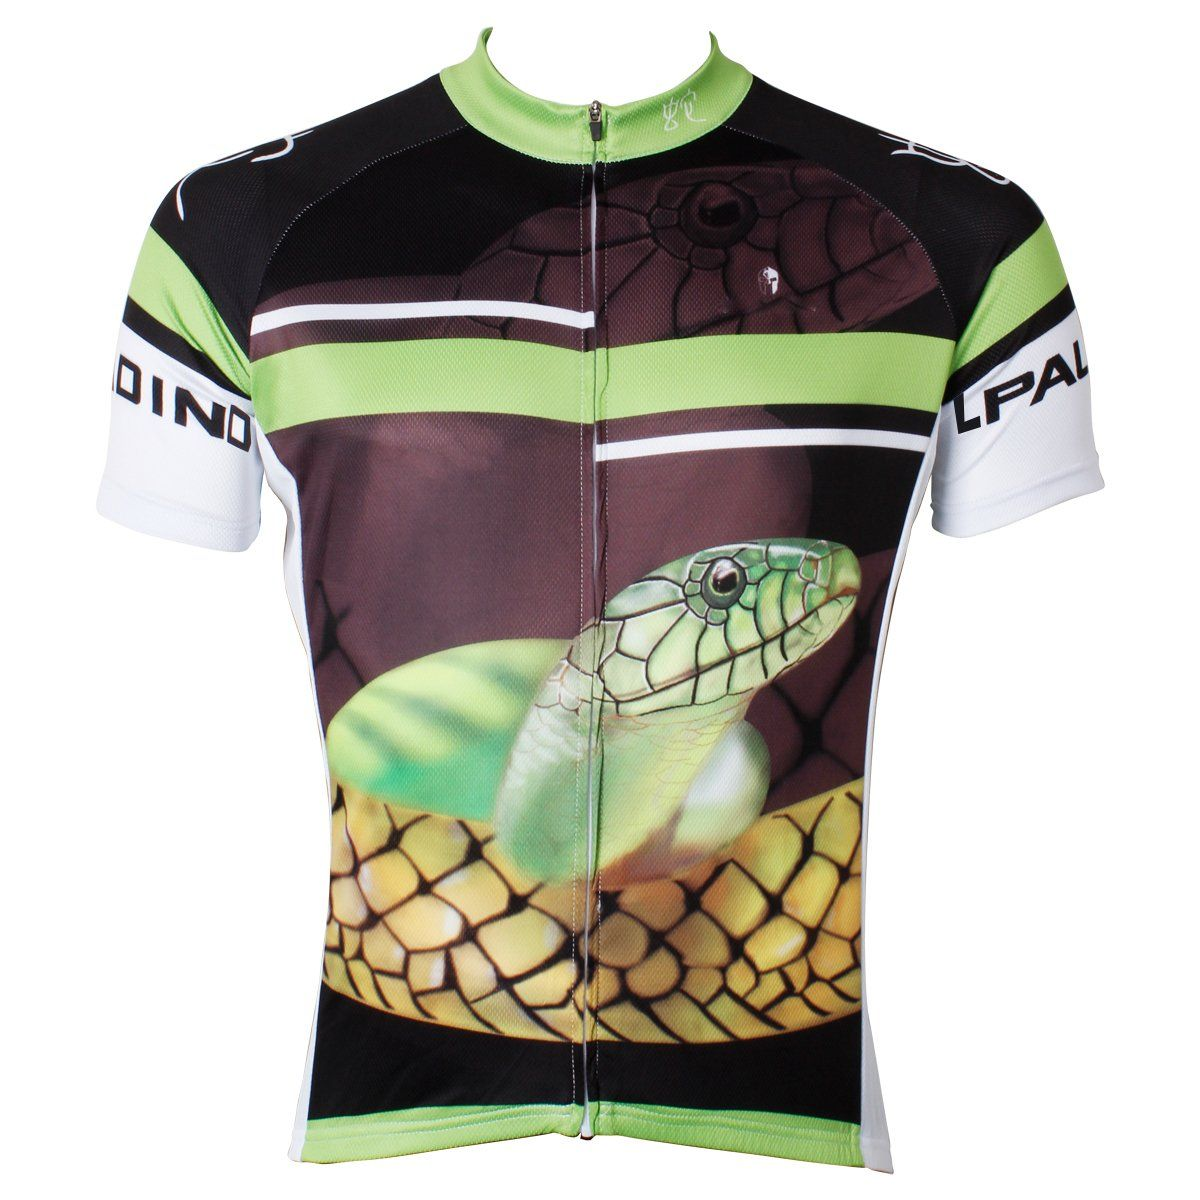 Ilpaladino Snake Men s Breathable Quick Dry Short-Sleeve Green Black Cycling  Jersey Bicycling Pro Cycle Clothing Racing Apparel Outdoor Sports Leisure  ... b175f6af4